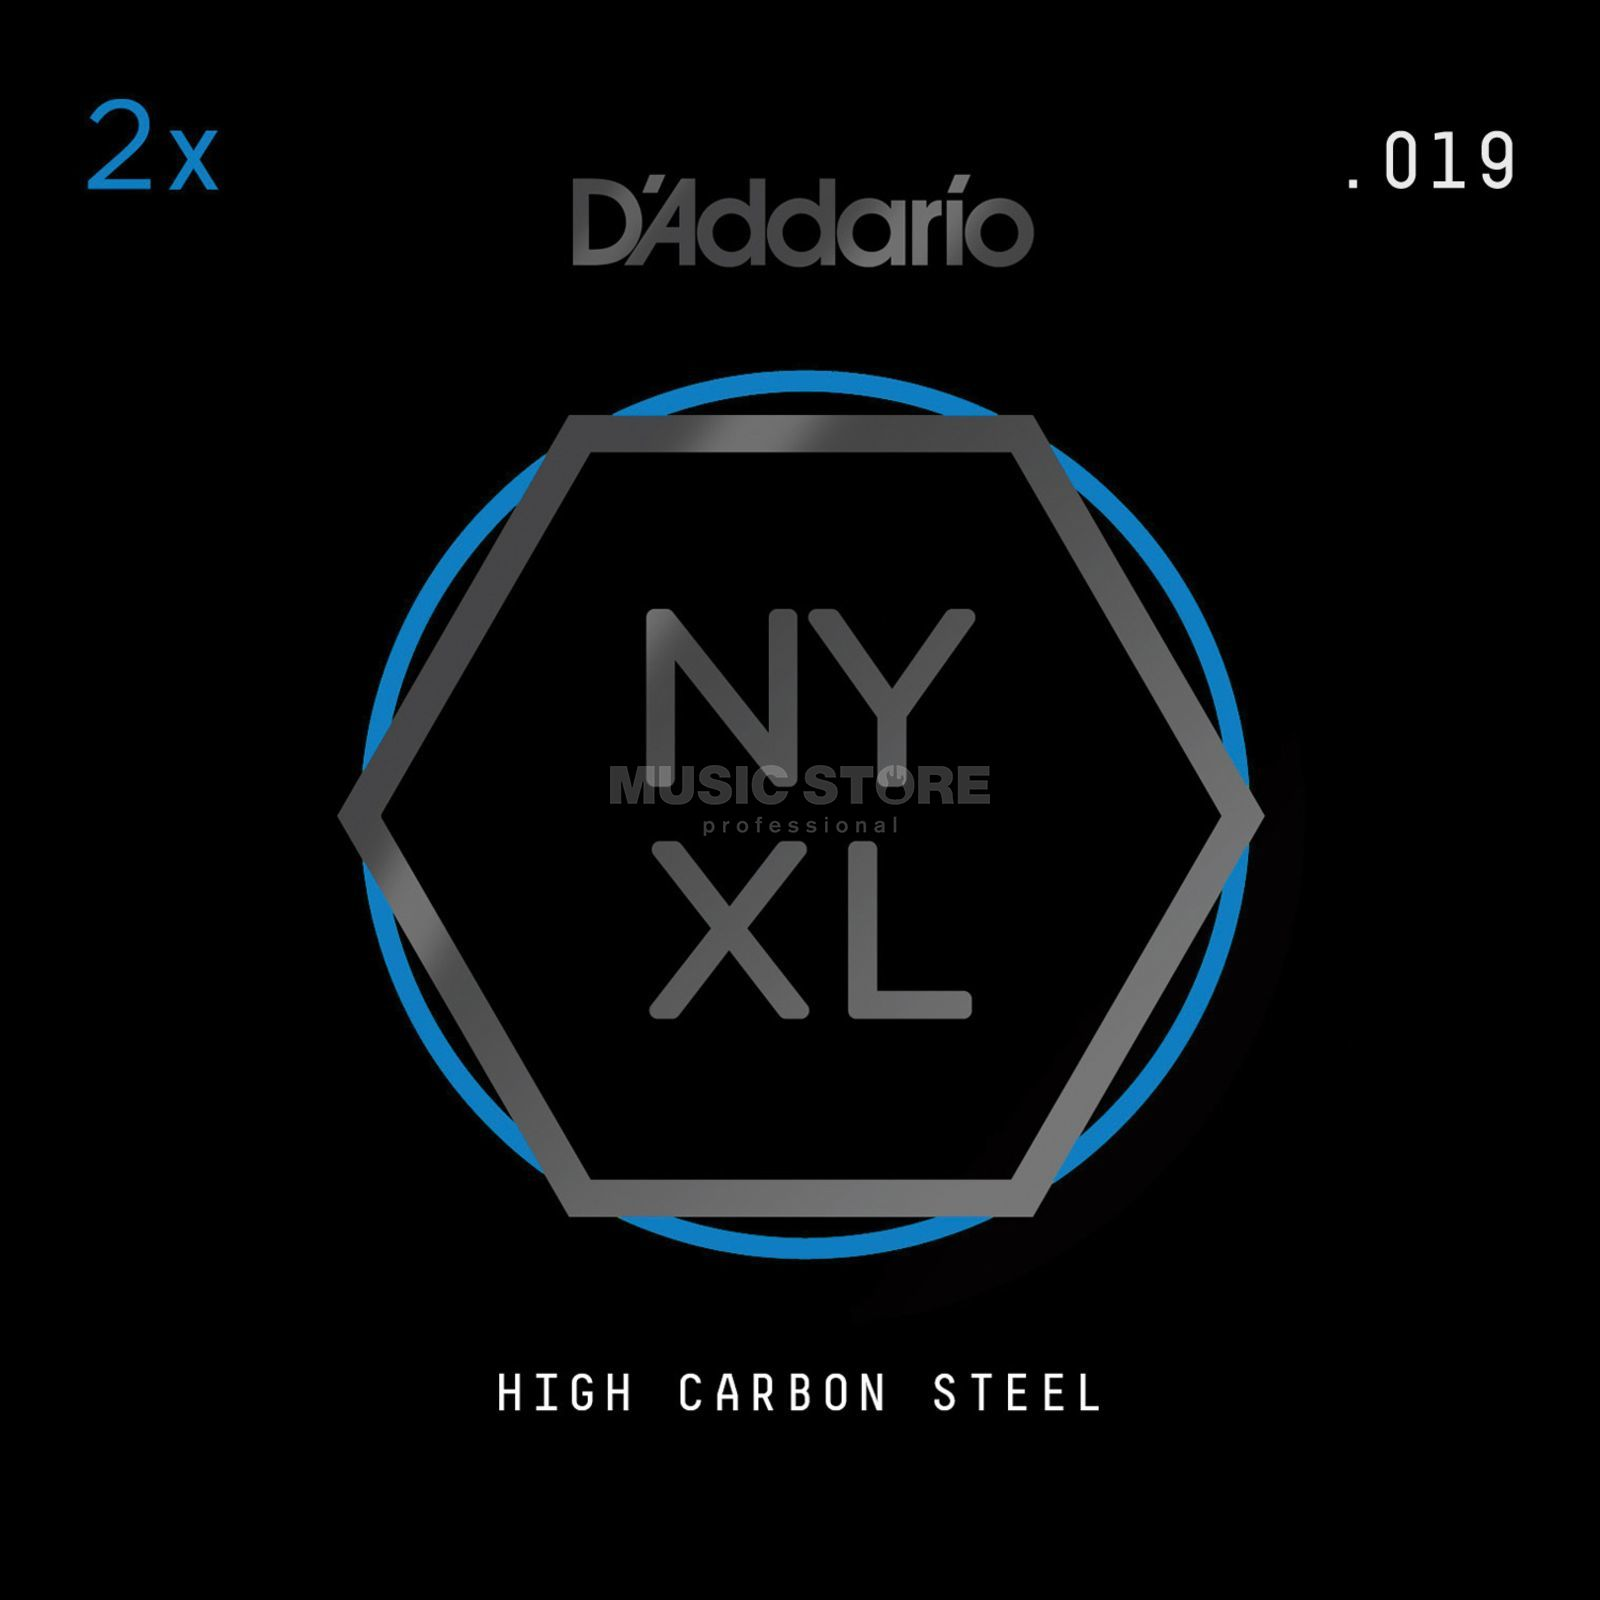 D'Addario NYPL019 Plain Single String 2-Pack - High Carbon Steel Product Image